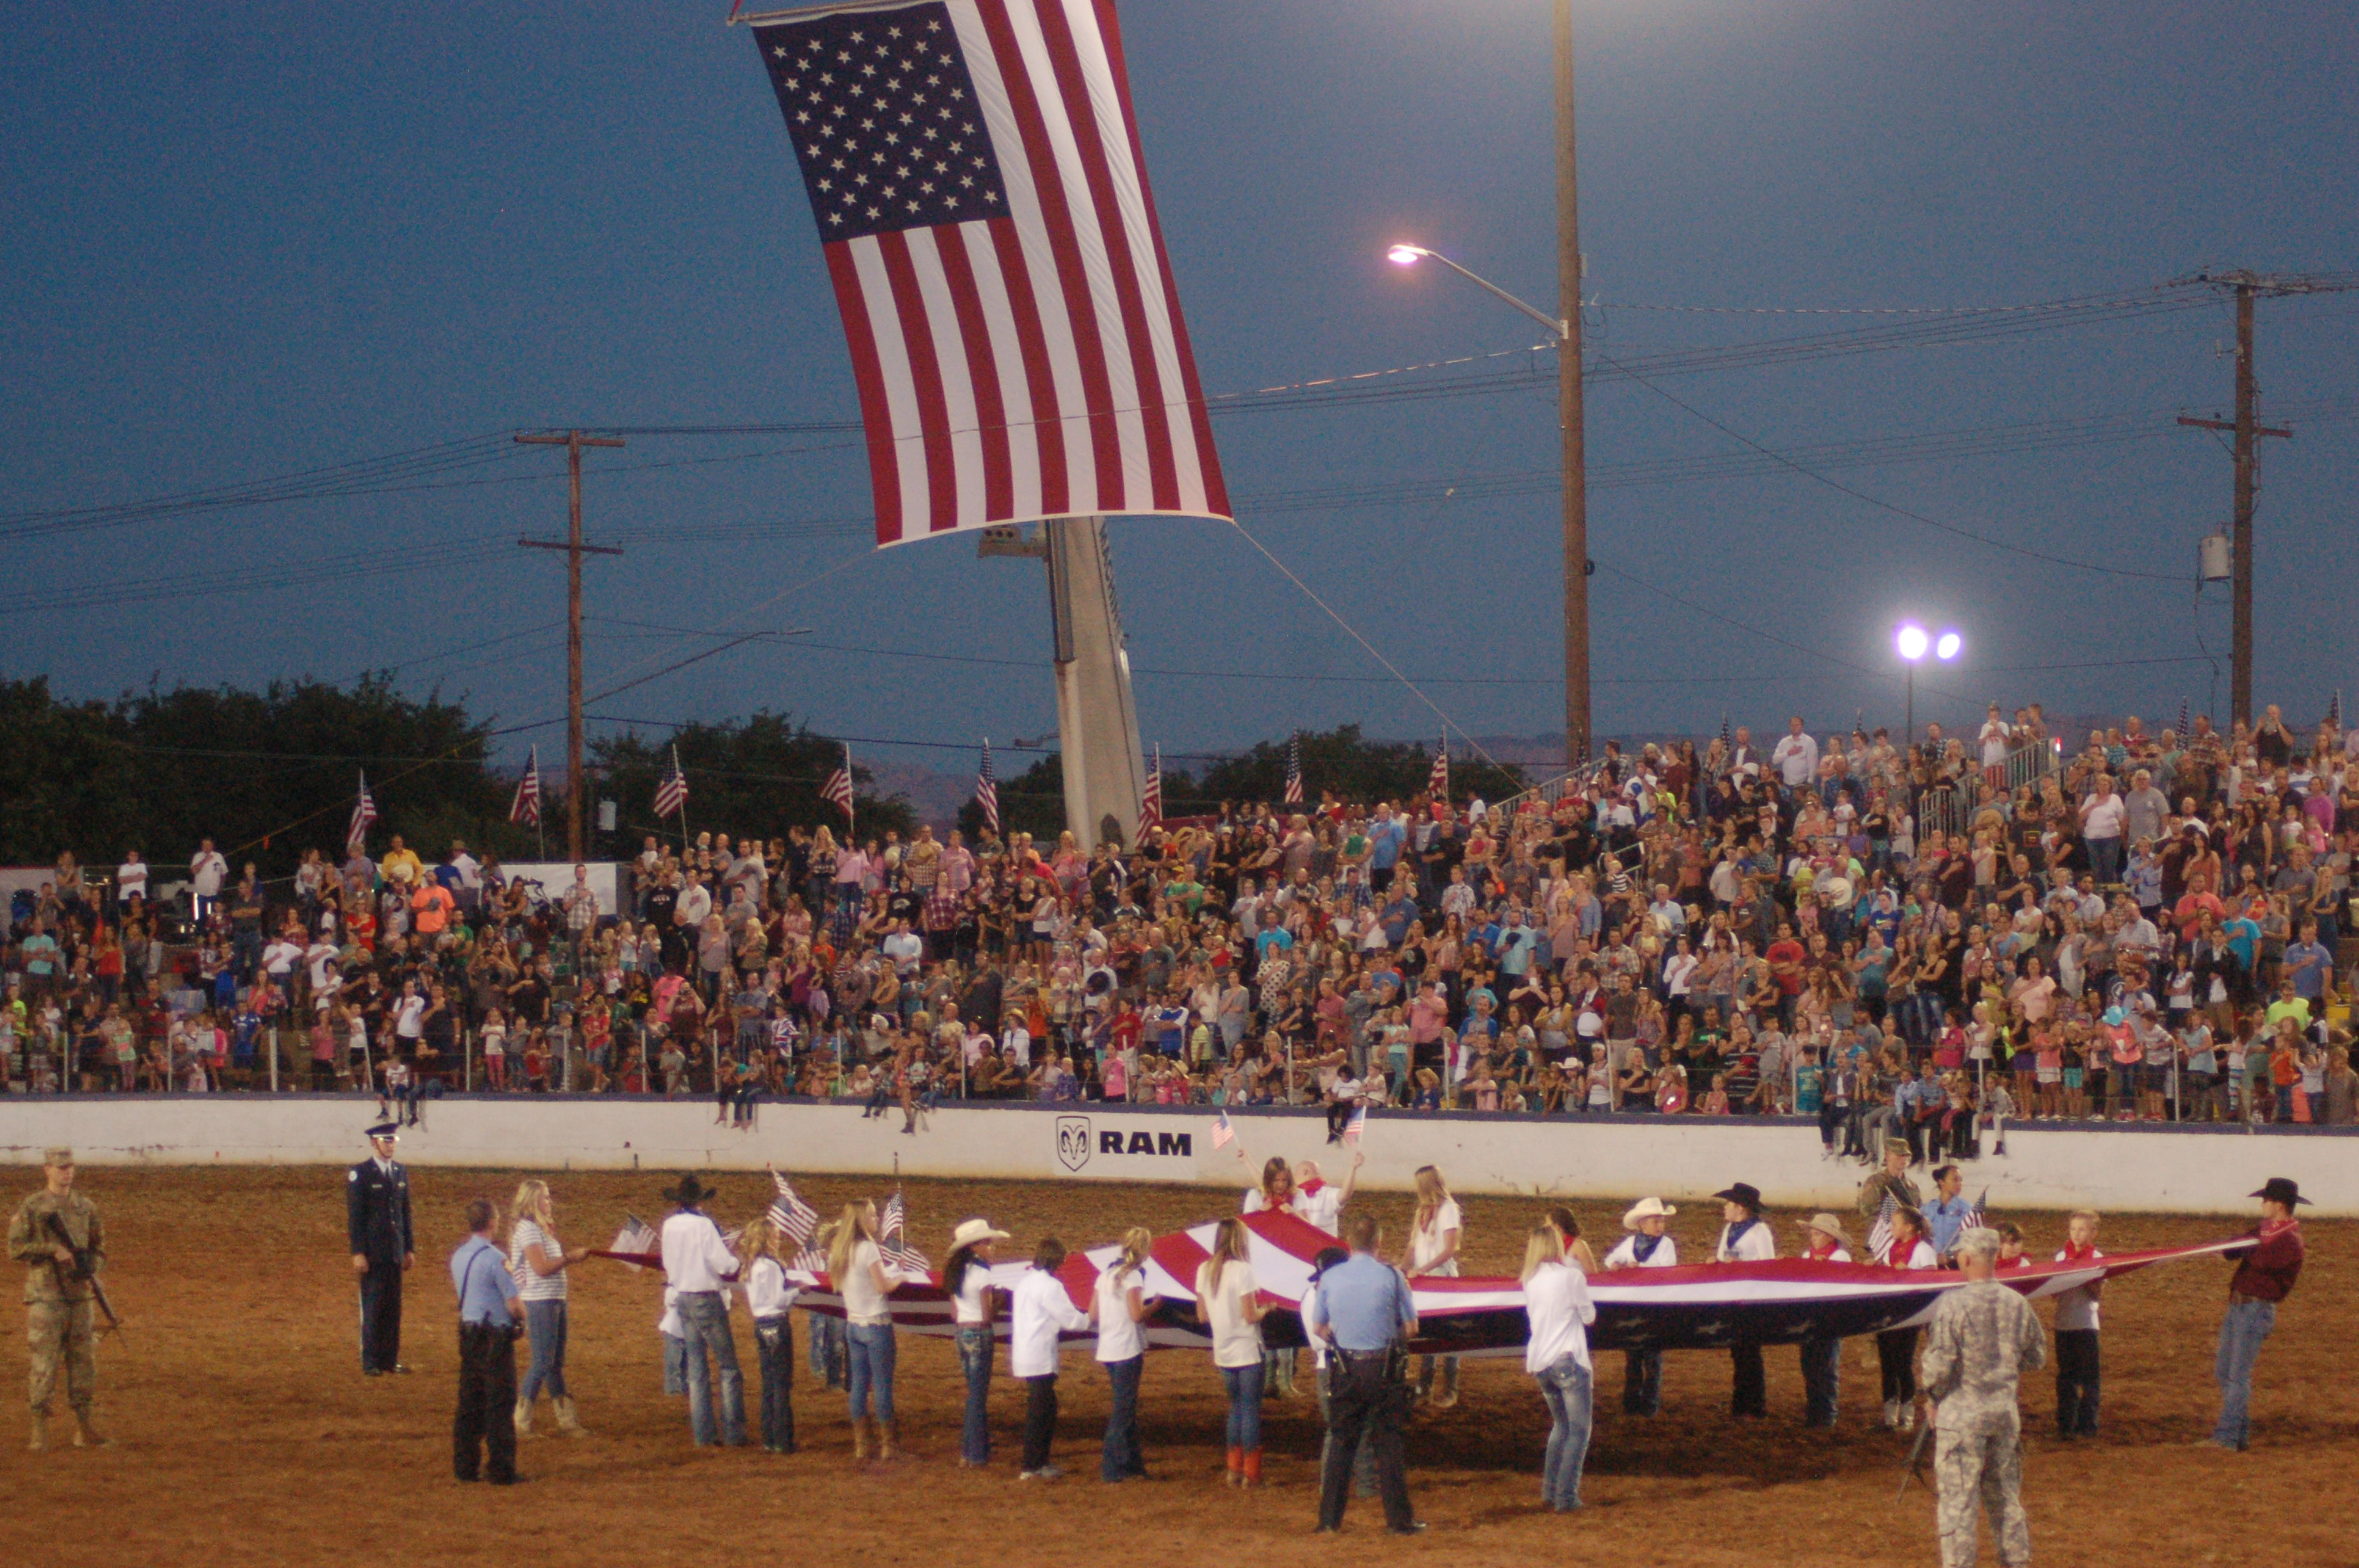 A patriotic program kicks off the 82nd annual Dixie Roundup Rodeo, St. George, Utah, September 15, 2016 | Photo by Hollie Reina, St. George News